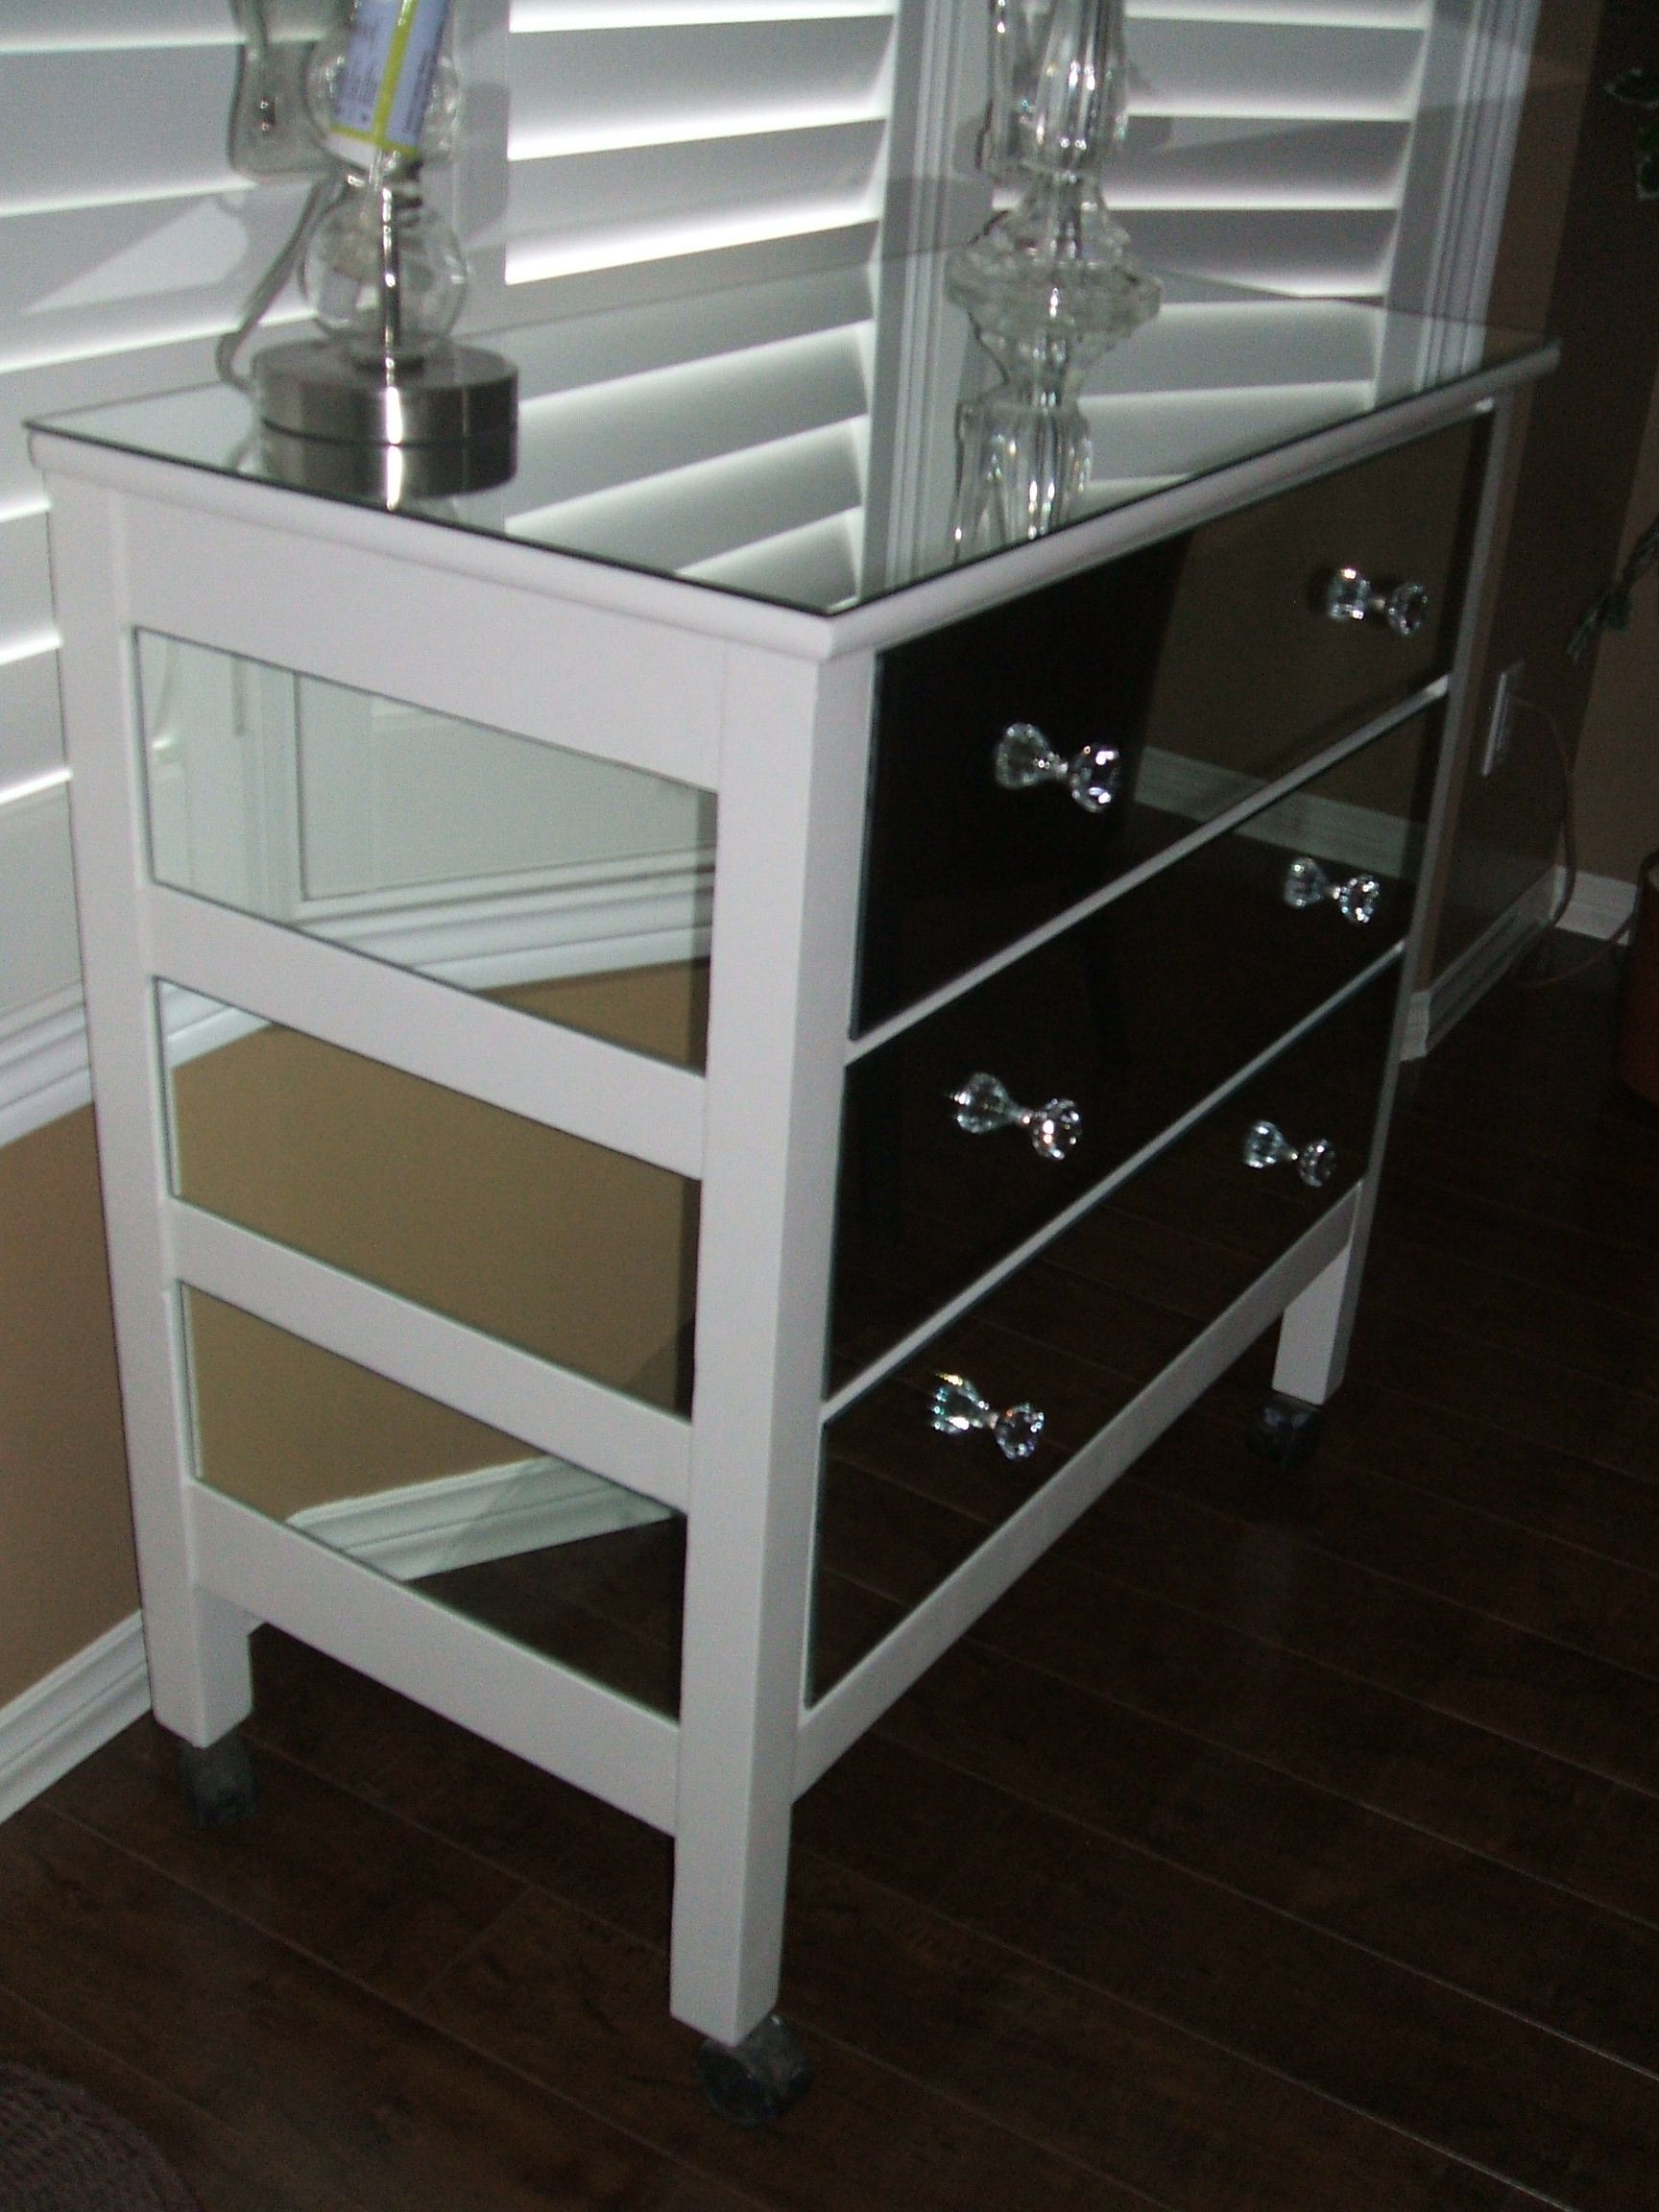 An Old Dresser I Refurbished Painted And Covered In Mirror